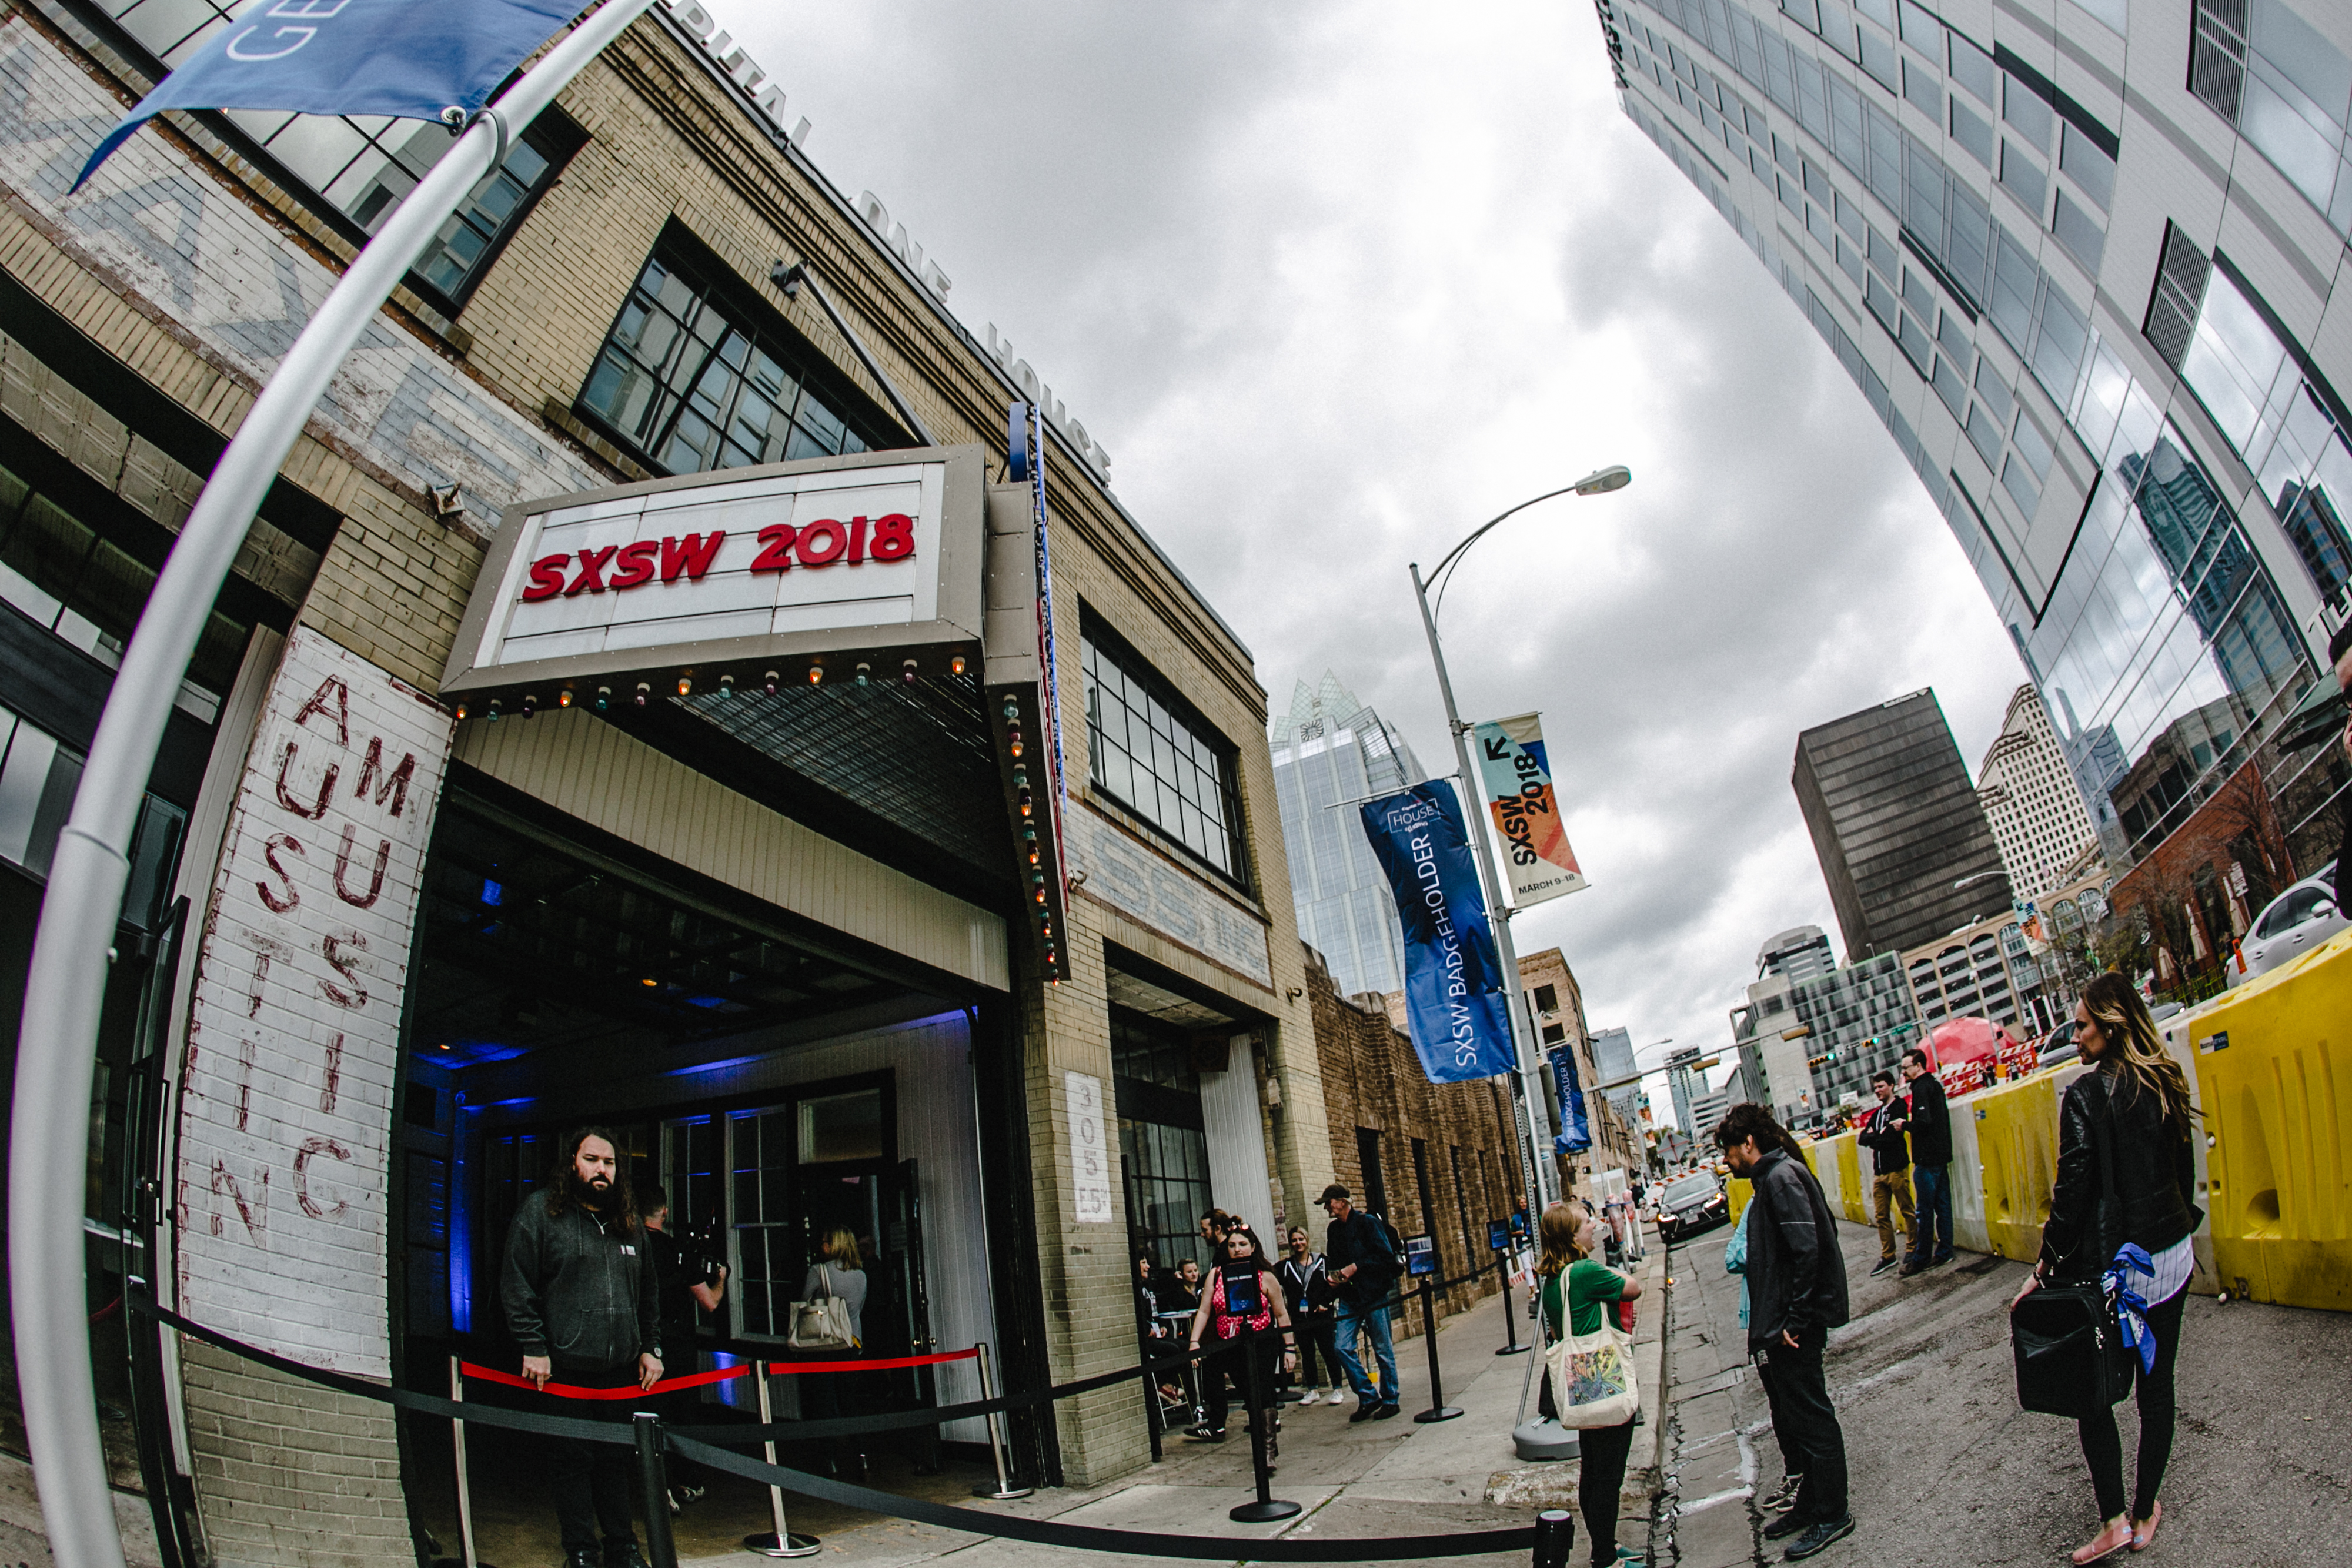 2018 SXSW Conference & Festivals | Photo by Dylan Johnson